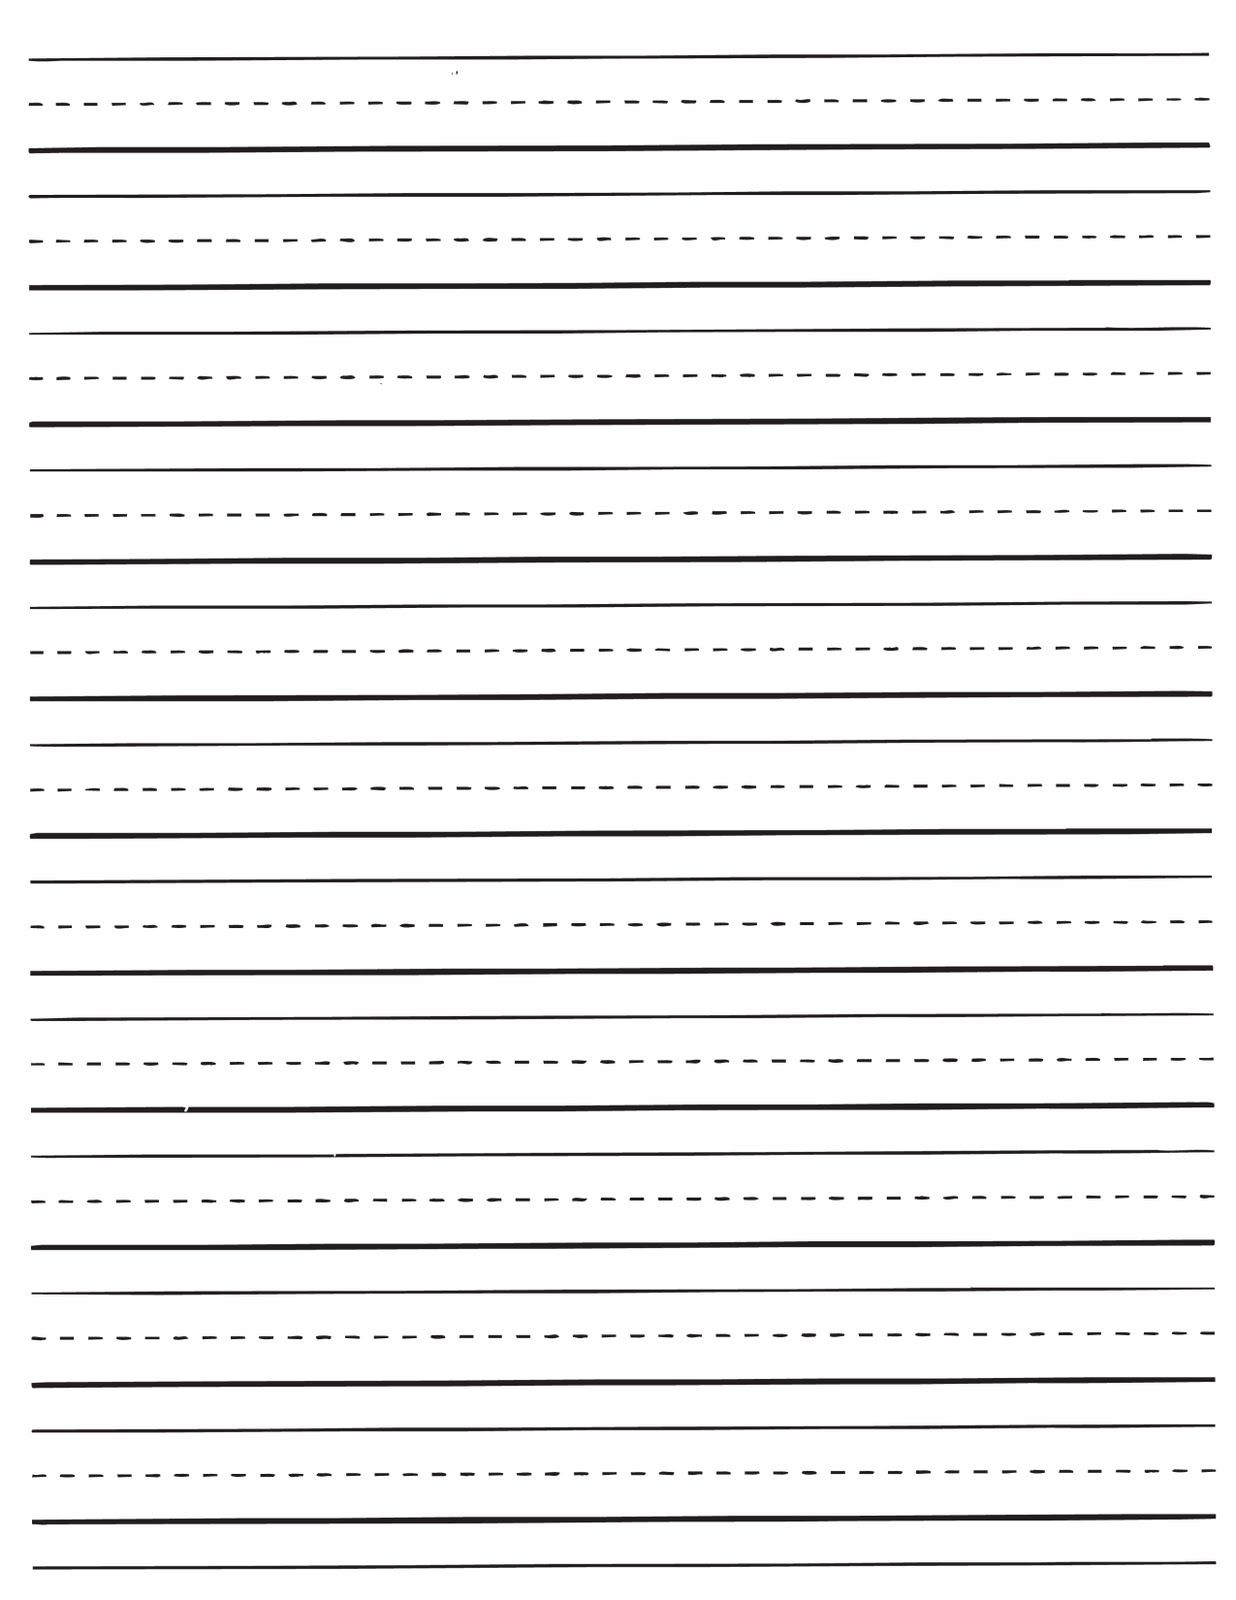 Lined Paper for Kids Kiddo Shelter – Lined Paper Template